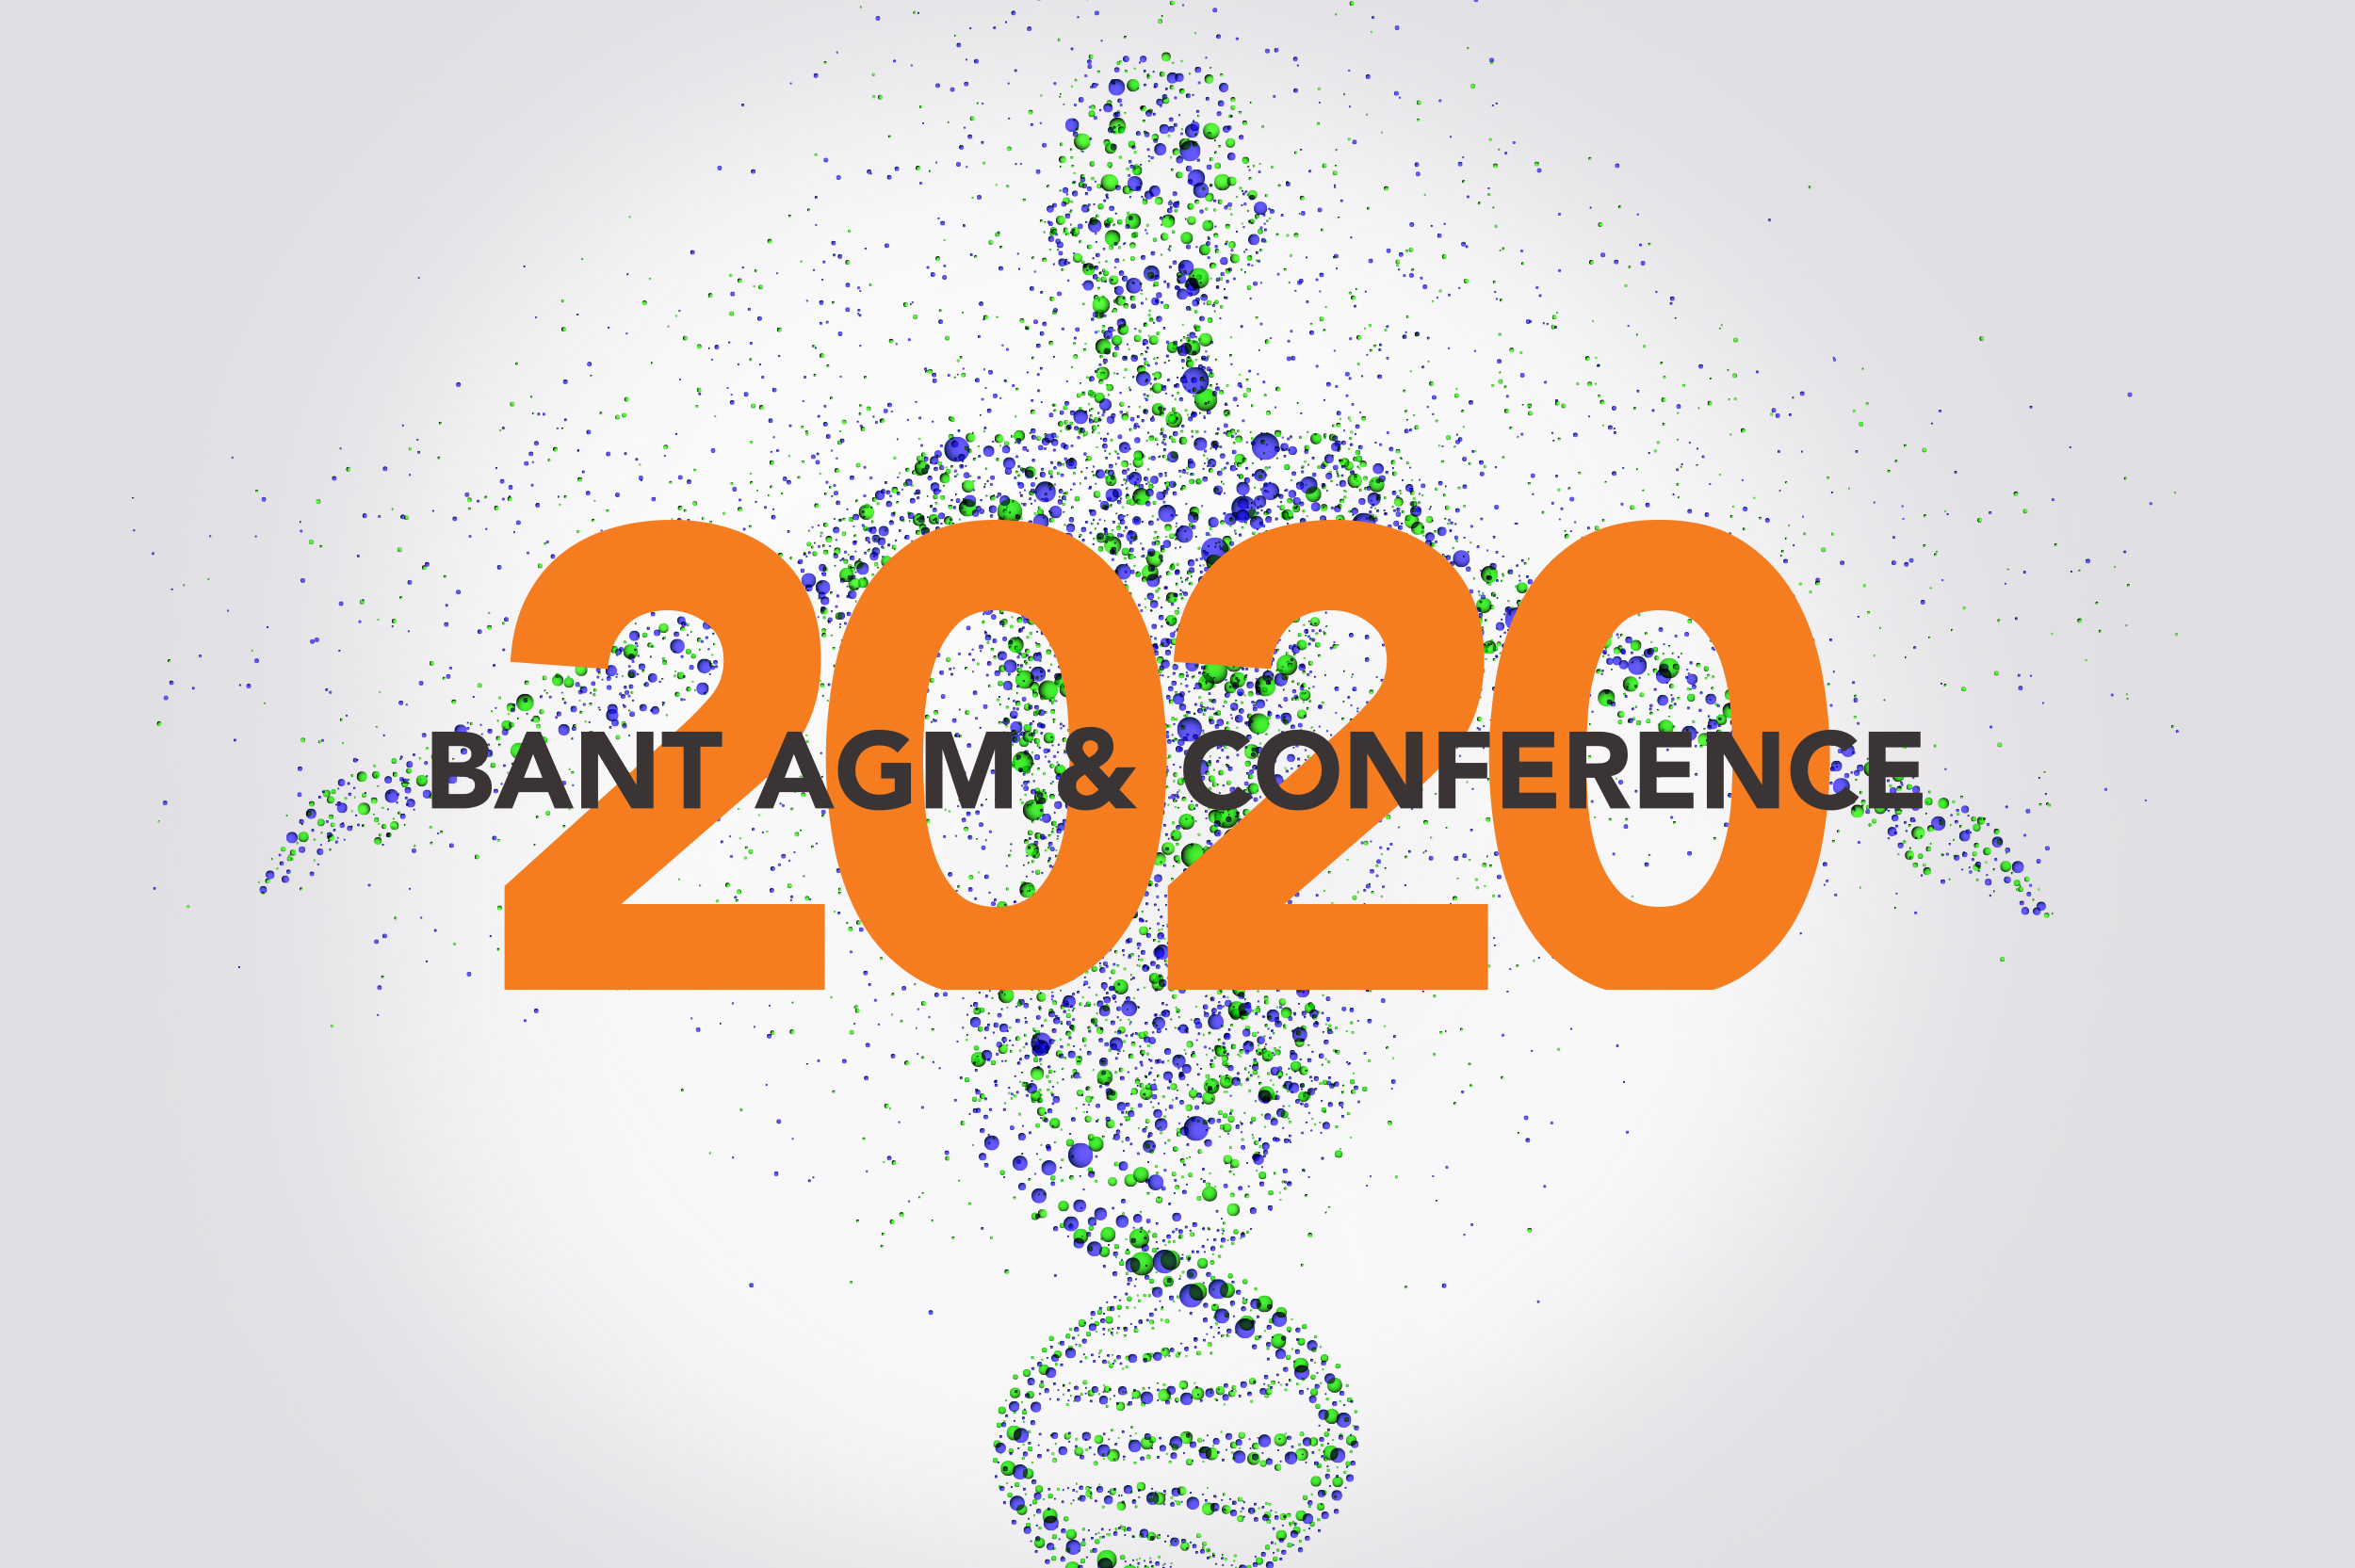 BANT AGM event image